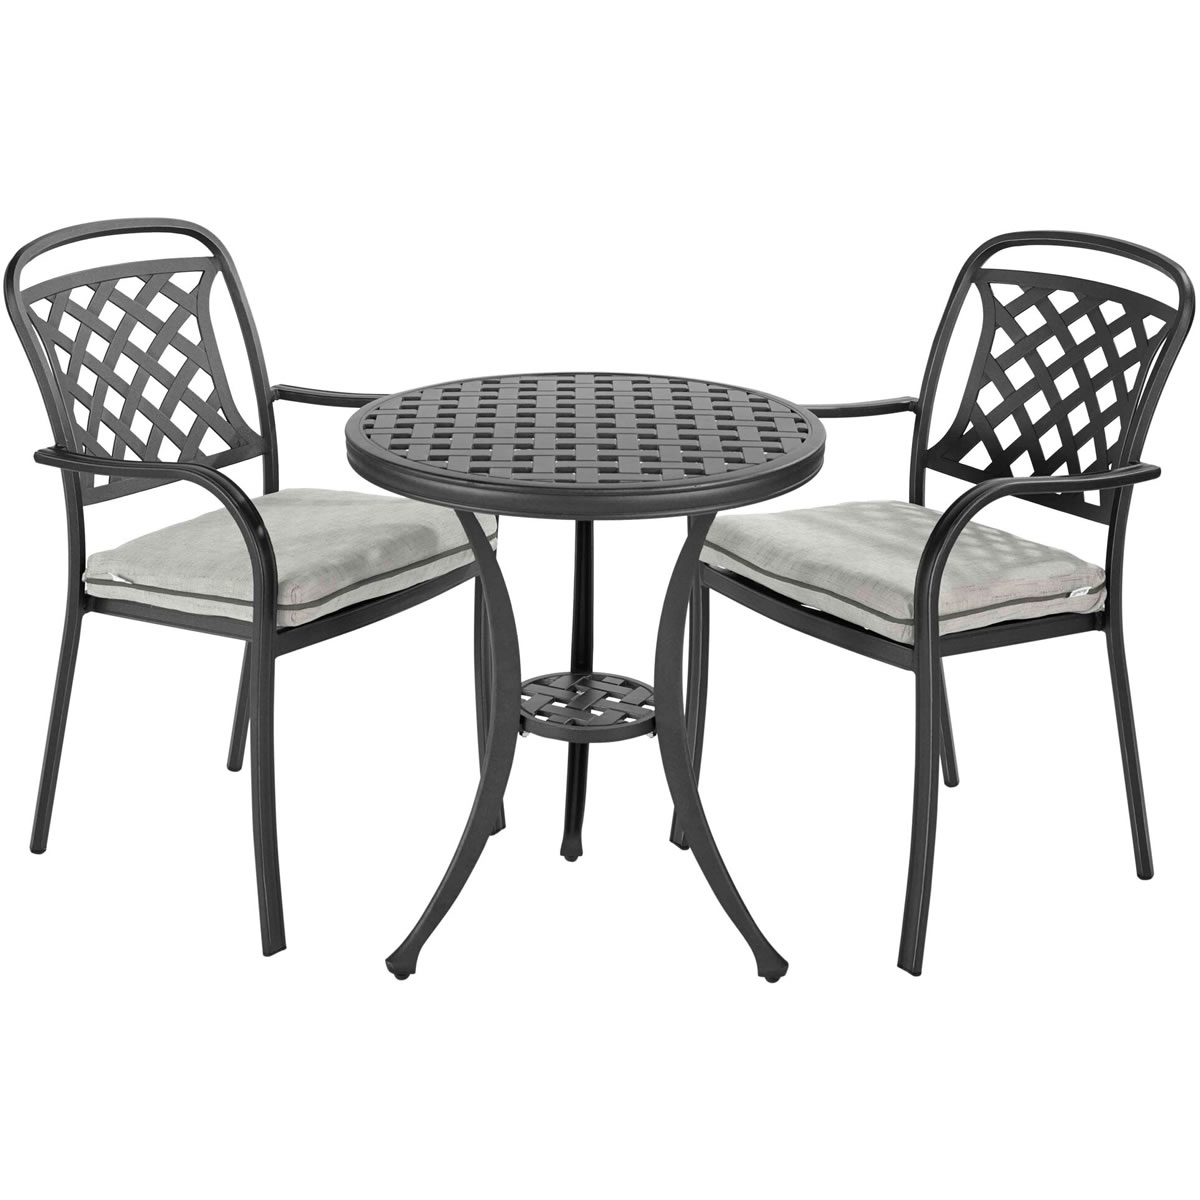 Extra image of Hartman Berkeley Bistro Set - Midnight/Shadow